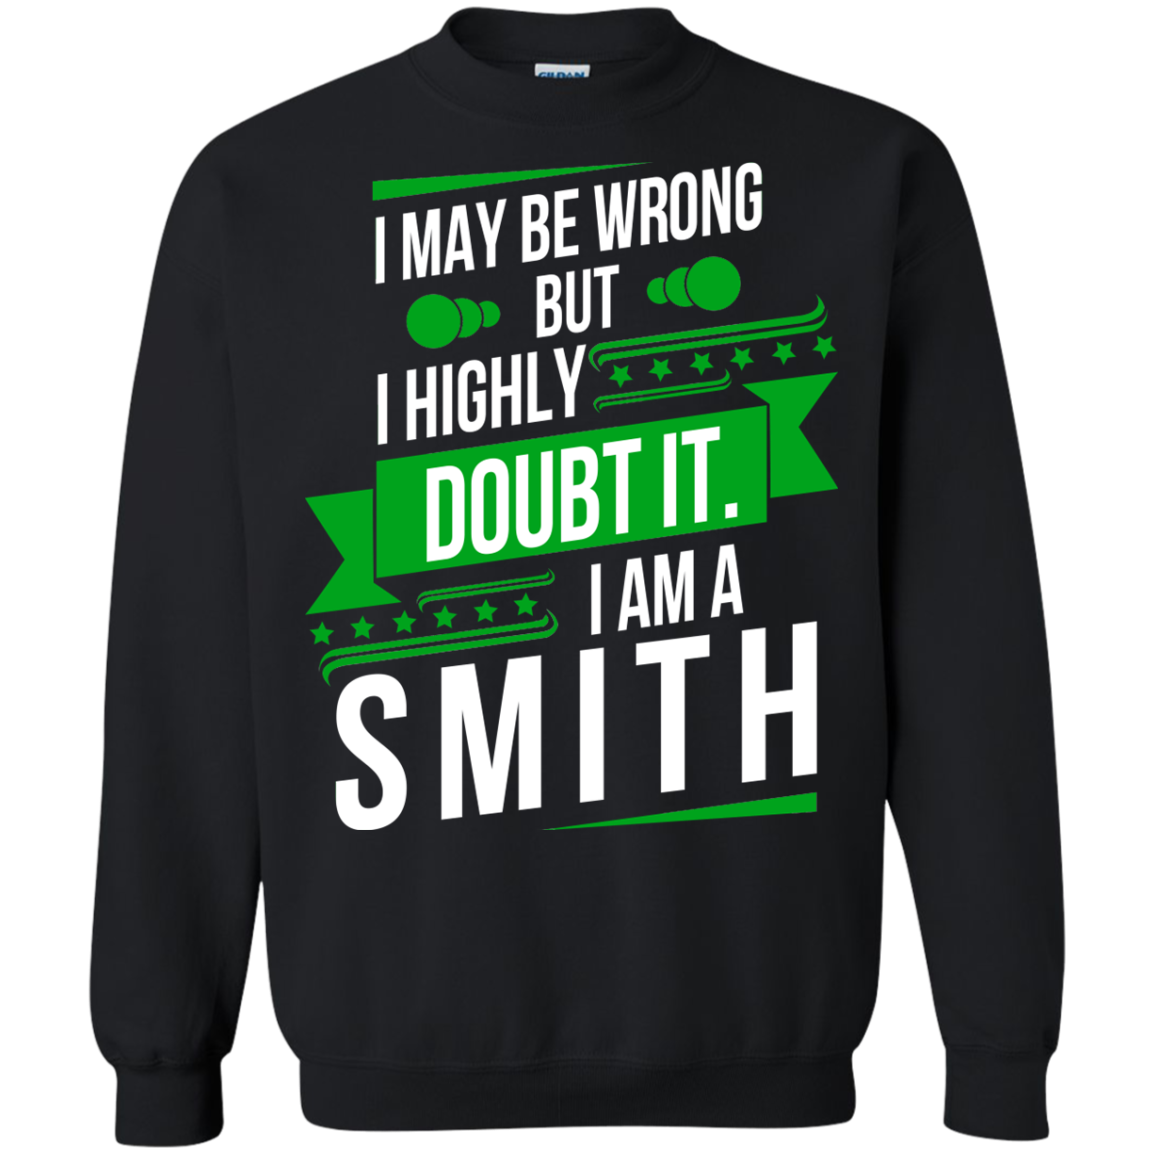 I May Be Wrong But I Highly Doubt It I Am... Smith - 99 Cool Name Shirt ! Smith Shirt Birthday Gift - The Sun Cat